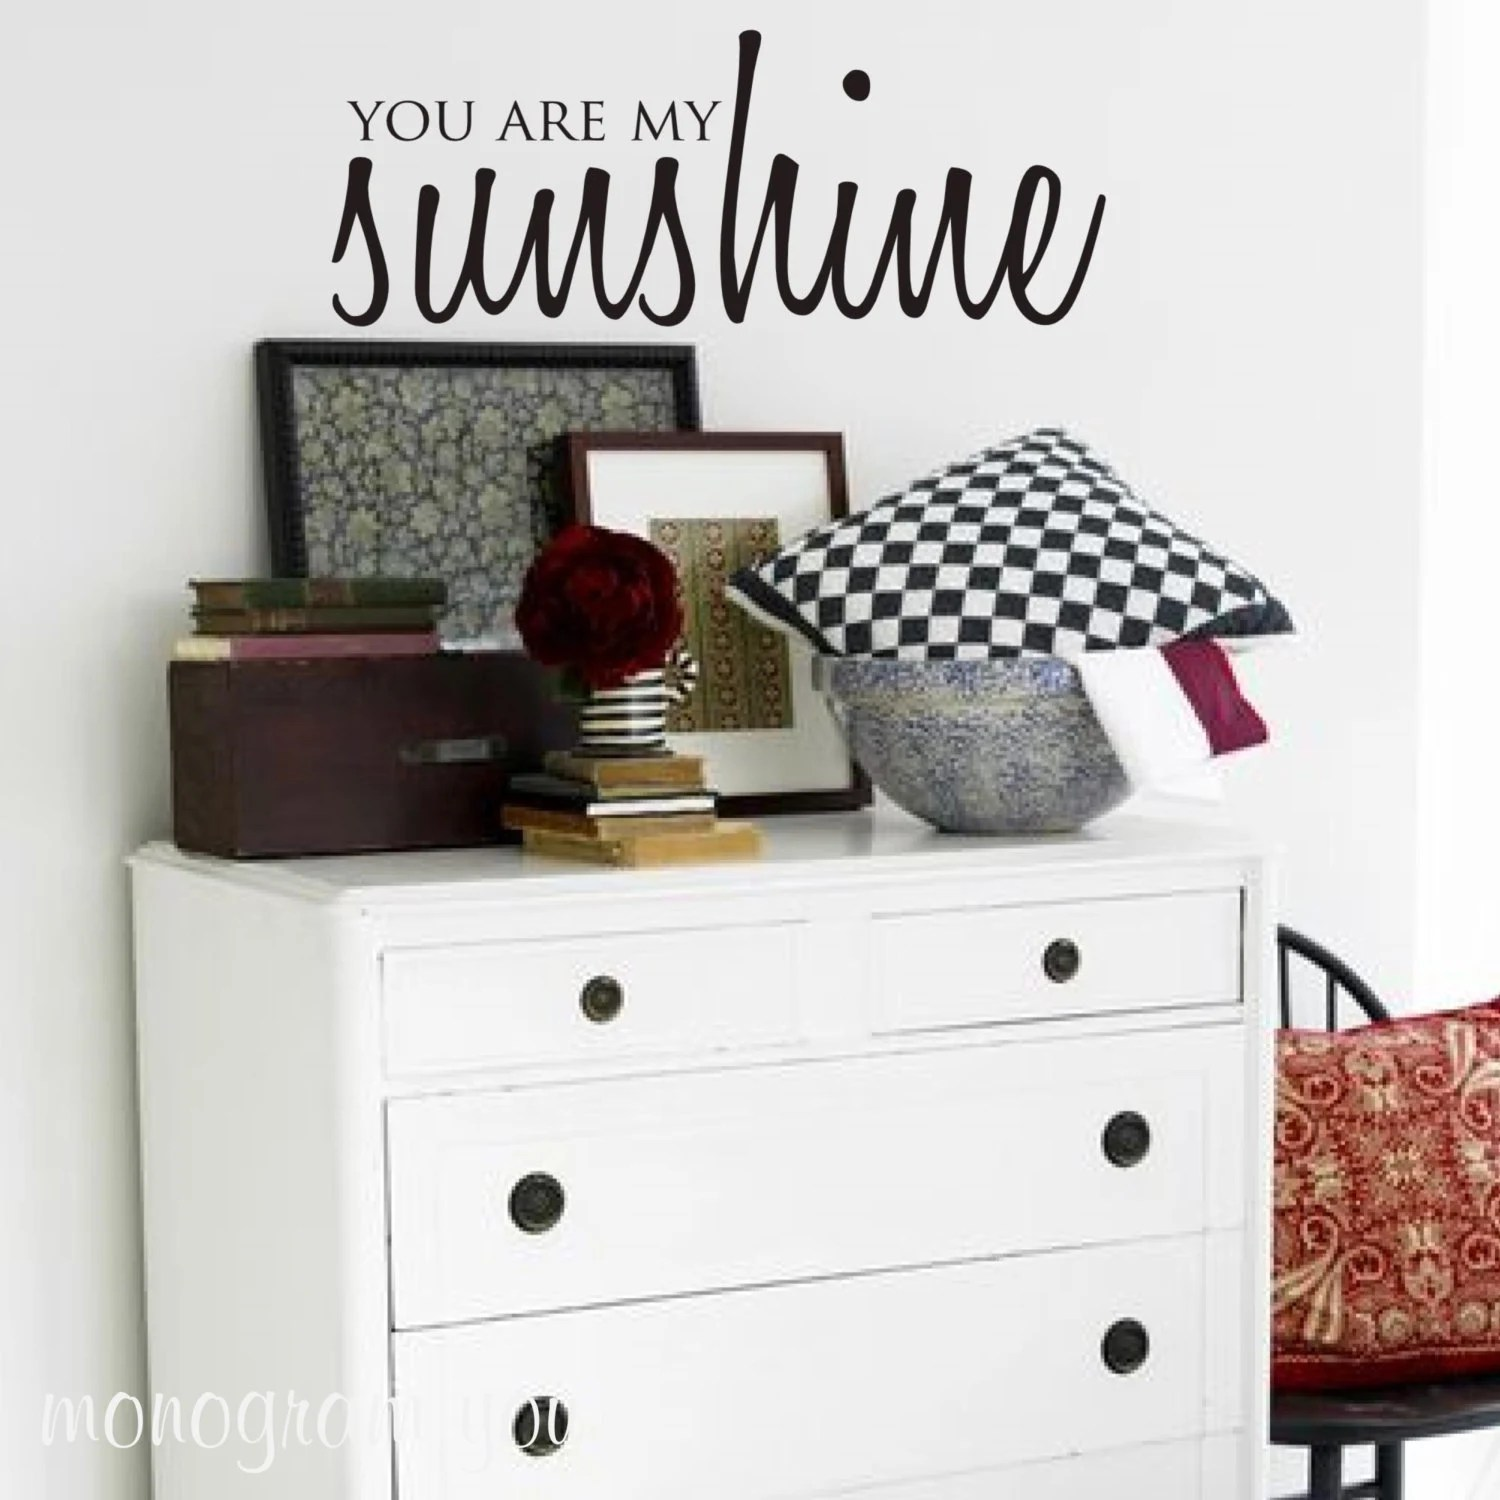 Boys Room Walls Wall Decal You Are My Sunshine Nursery Wall Decal Kids Room Wall Decal Boys Room Wall Decal Girls Room Wall Decal